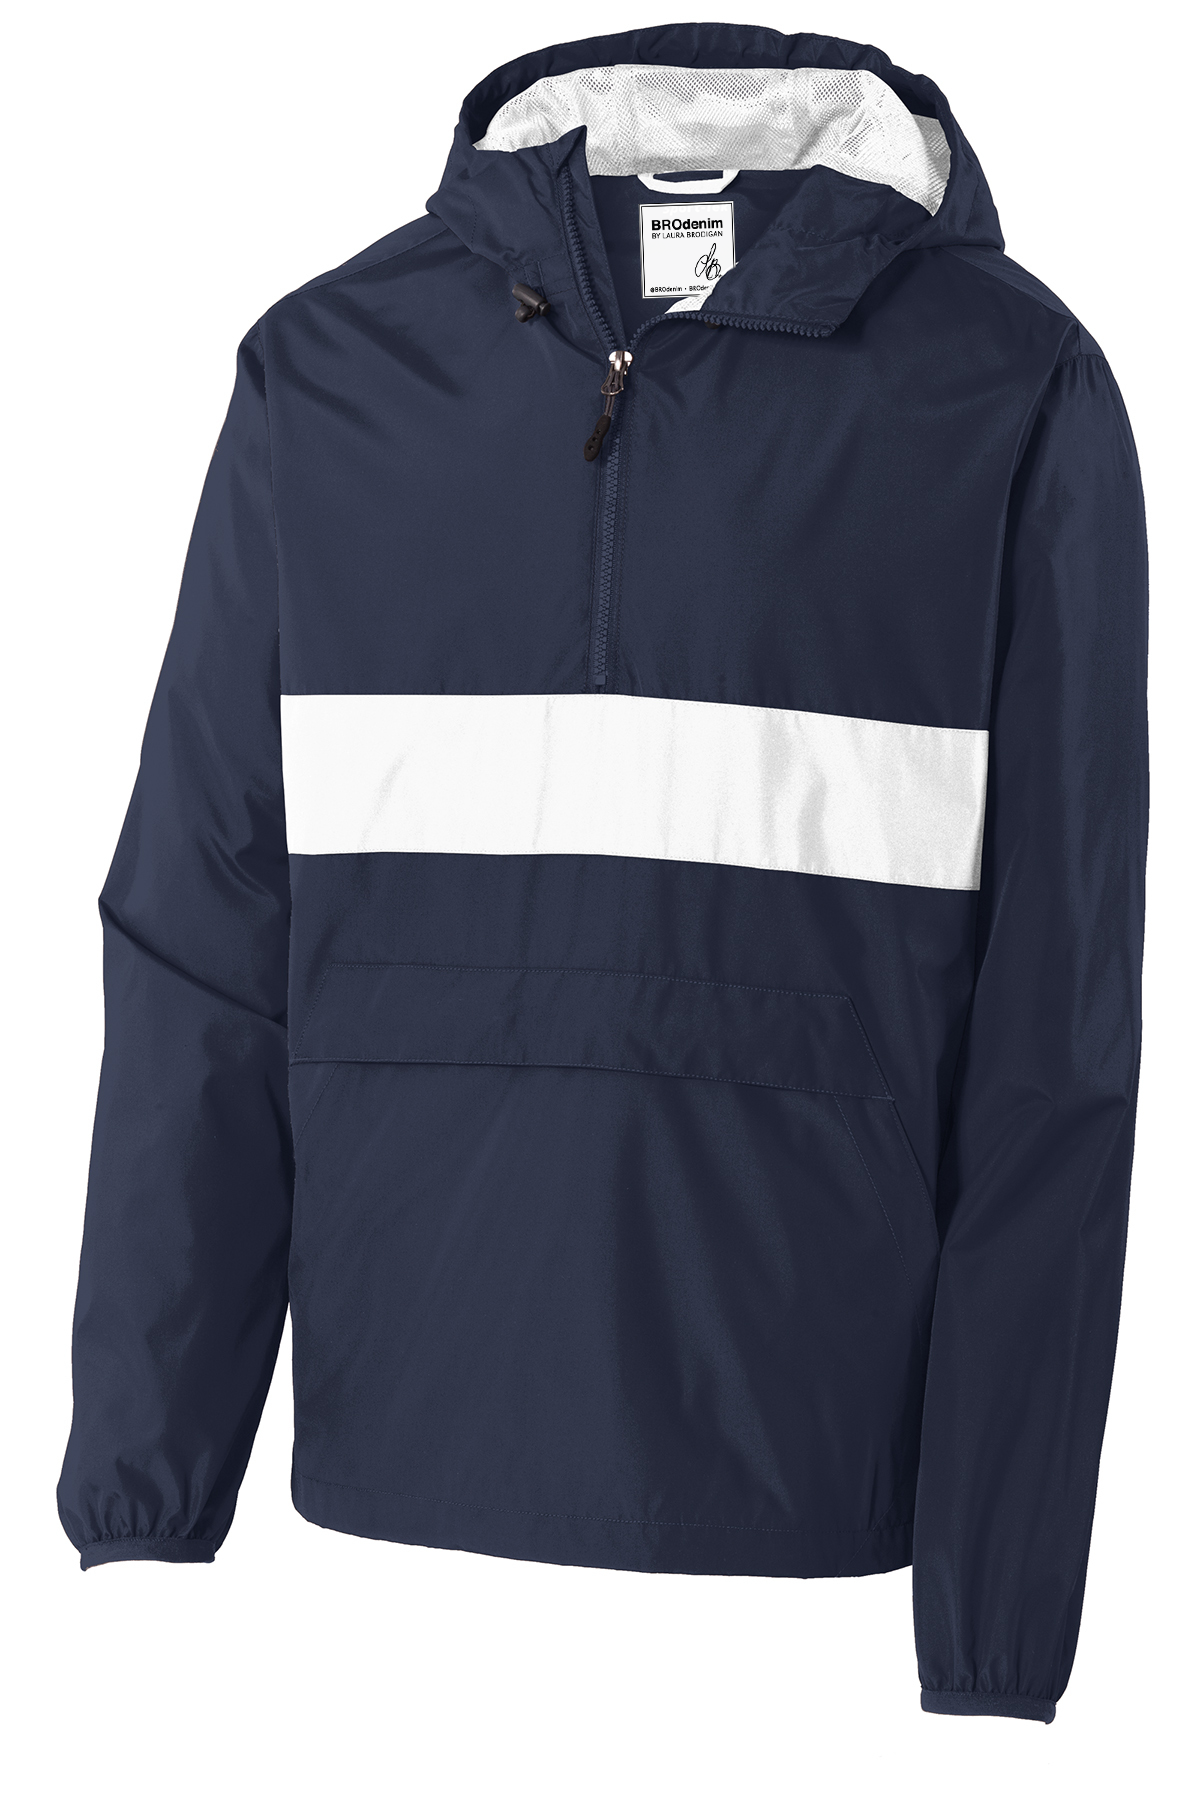 Wind Breaker  - ADULT [XS-4XL}A lighter weight and authentic rugby polo in popular team colors6.5-ounce, 100% ring spun cotton jerseyTag-free labelEngineered with yarn-dyed stripesWoven twill collarTwill-taped neck2-button twill-reinforced placket with rubber buttons1x1 rib knit cuffs